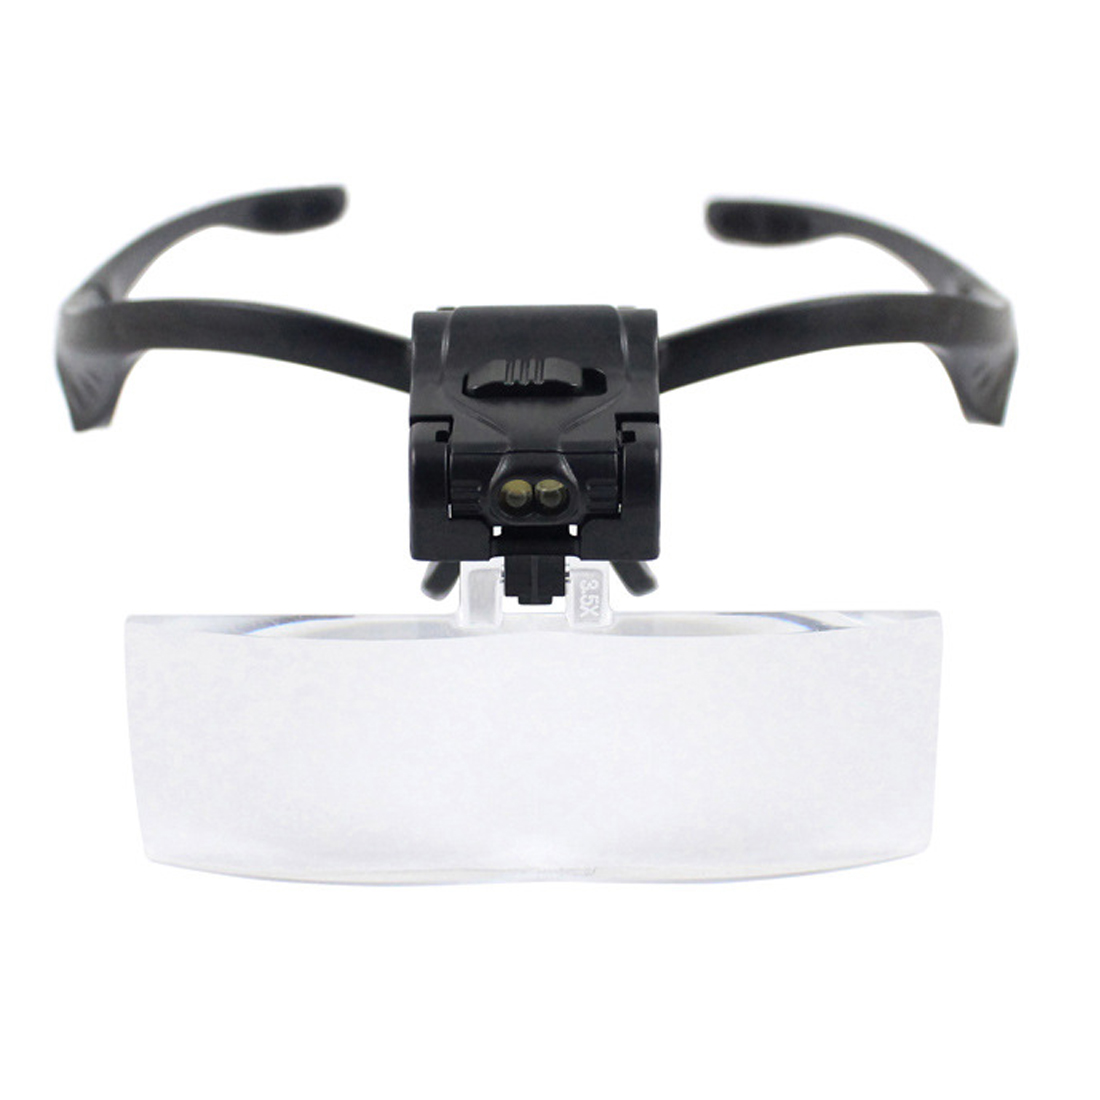 Magnifier Headband Magnifying Glass Eye Repair Magnifier 2 LED Light 1.0/1.5/2.0/2.5/3.5X 5PC Glasses Loupe Optical Lens 2pcs 150mm big optical pmma plastic round solar condensing compound eye fresnel lens improving brightness of light focal length